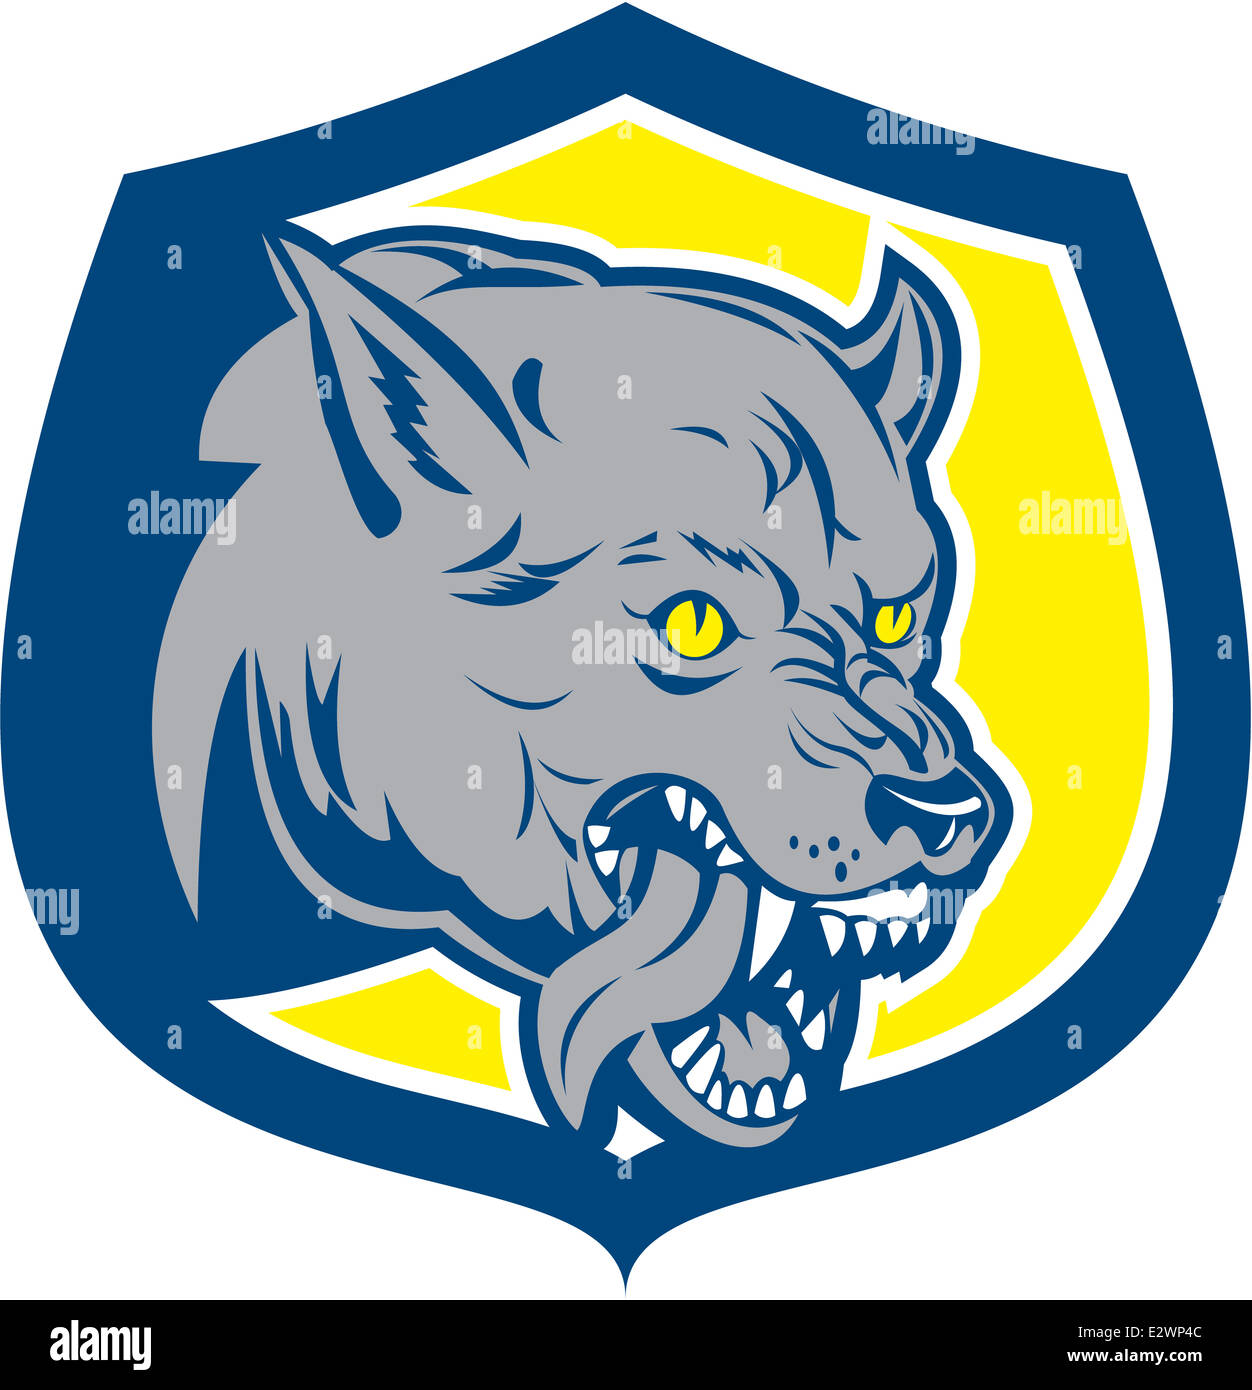 Illustration of an angry wild dog wolf head growling snarling tongue out agressive set inside shield crest done - Stock Image